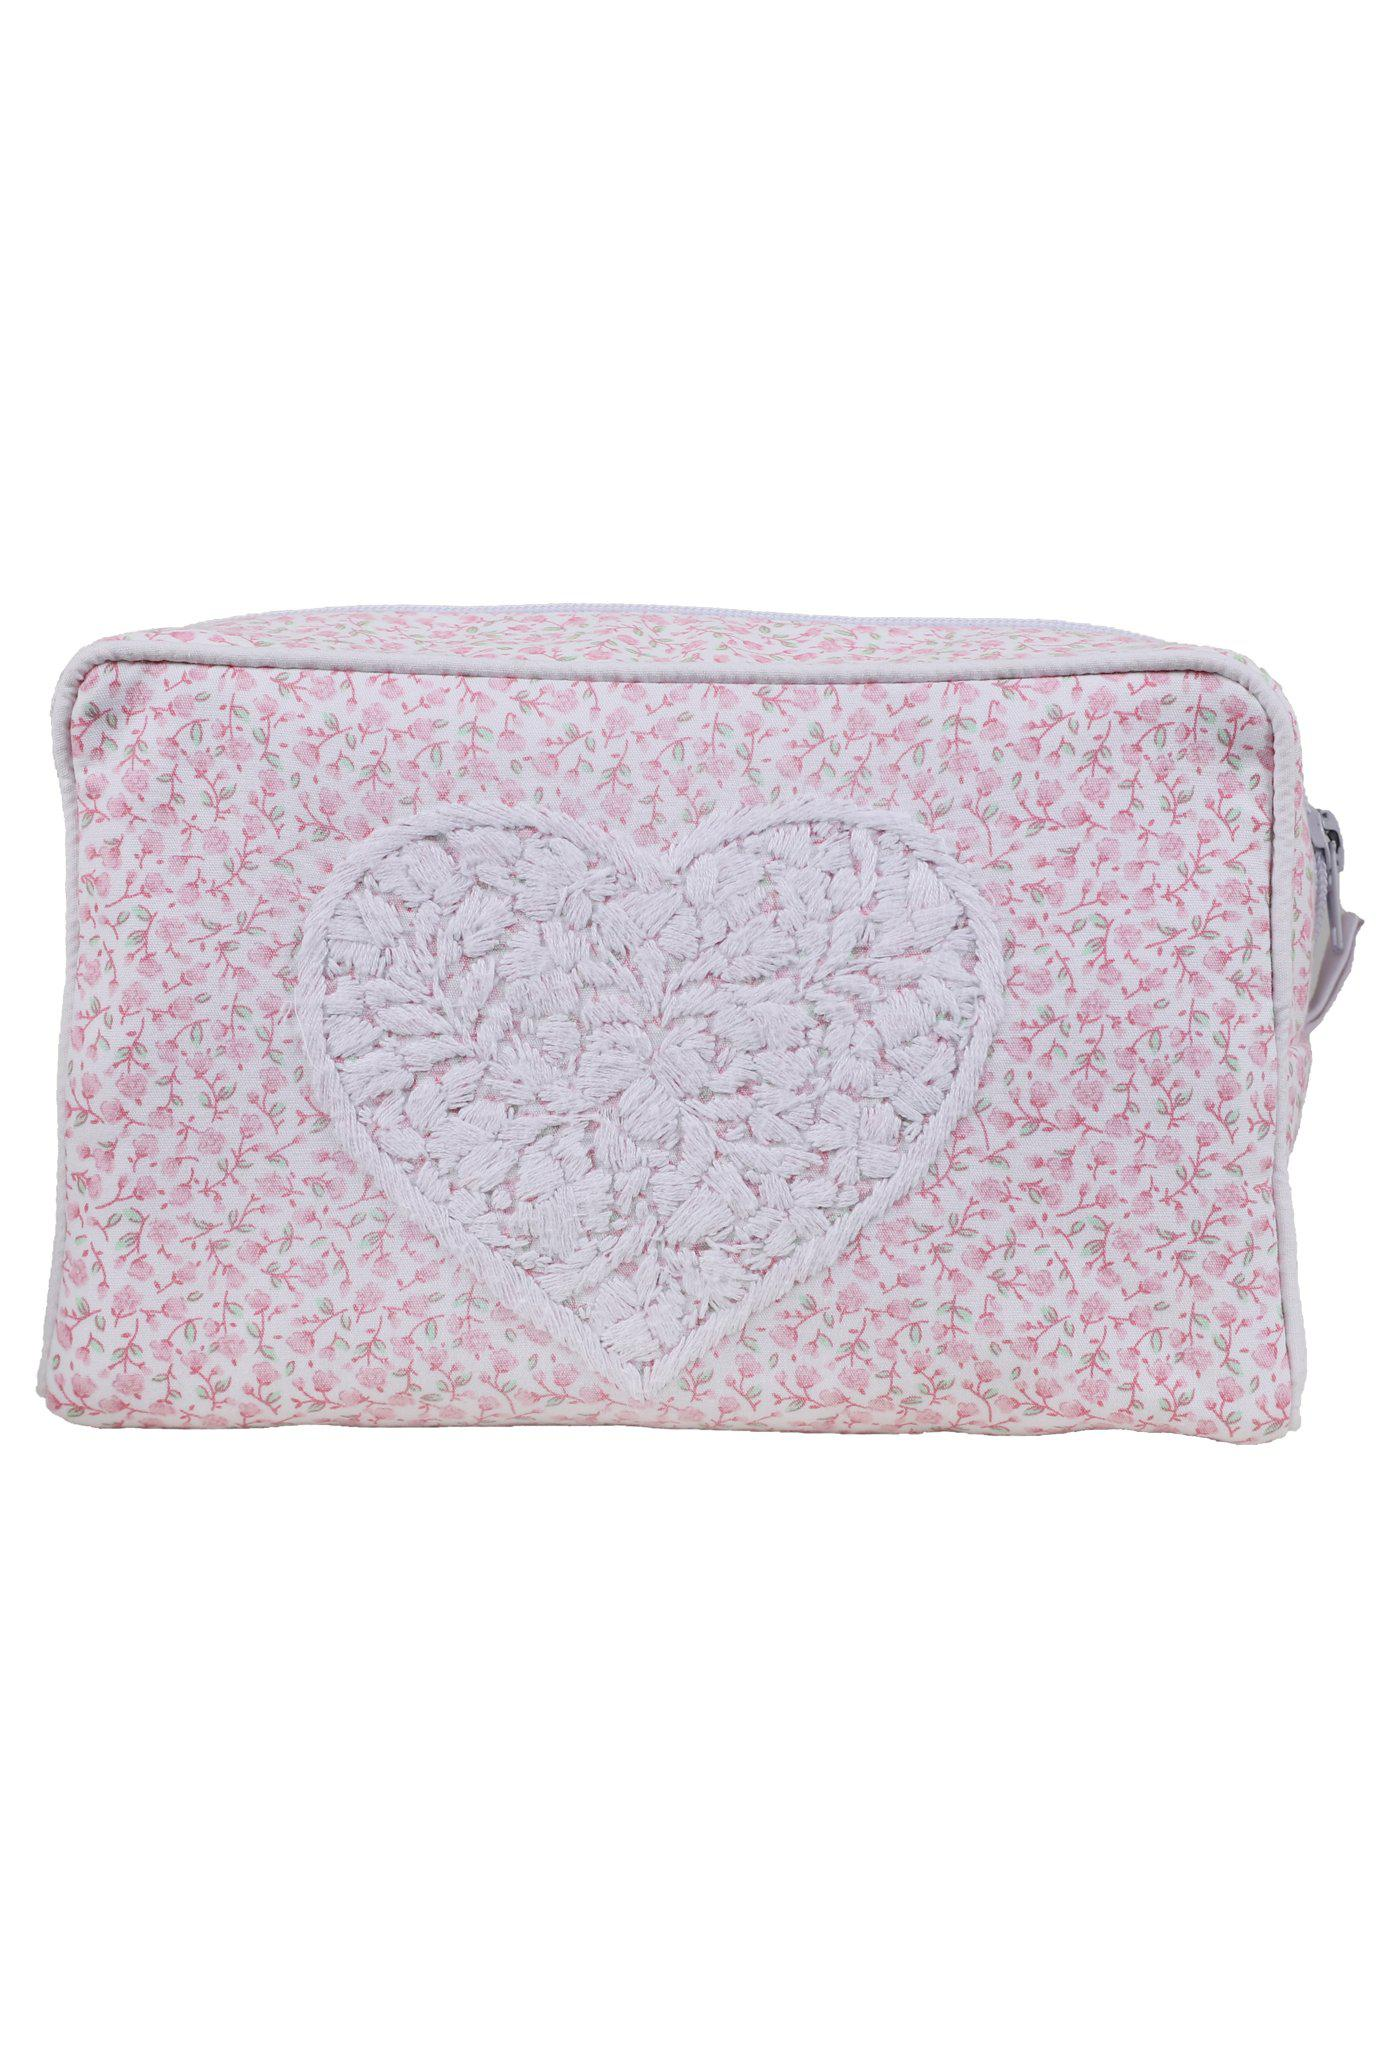 Madre Rosa Cosmetic Case